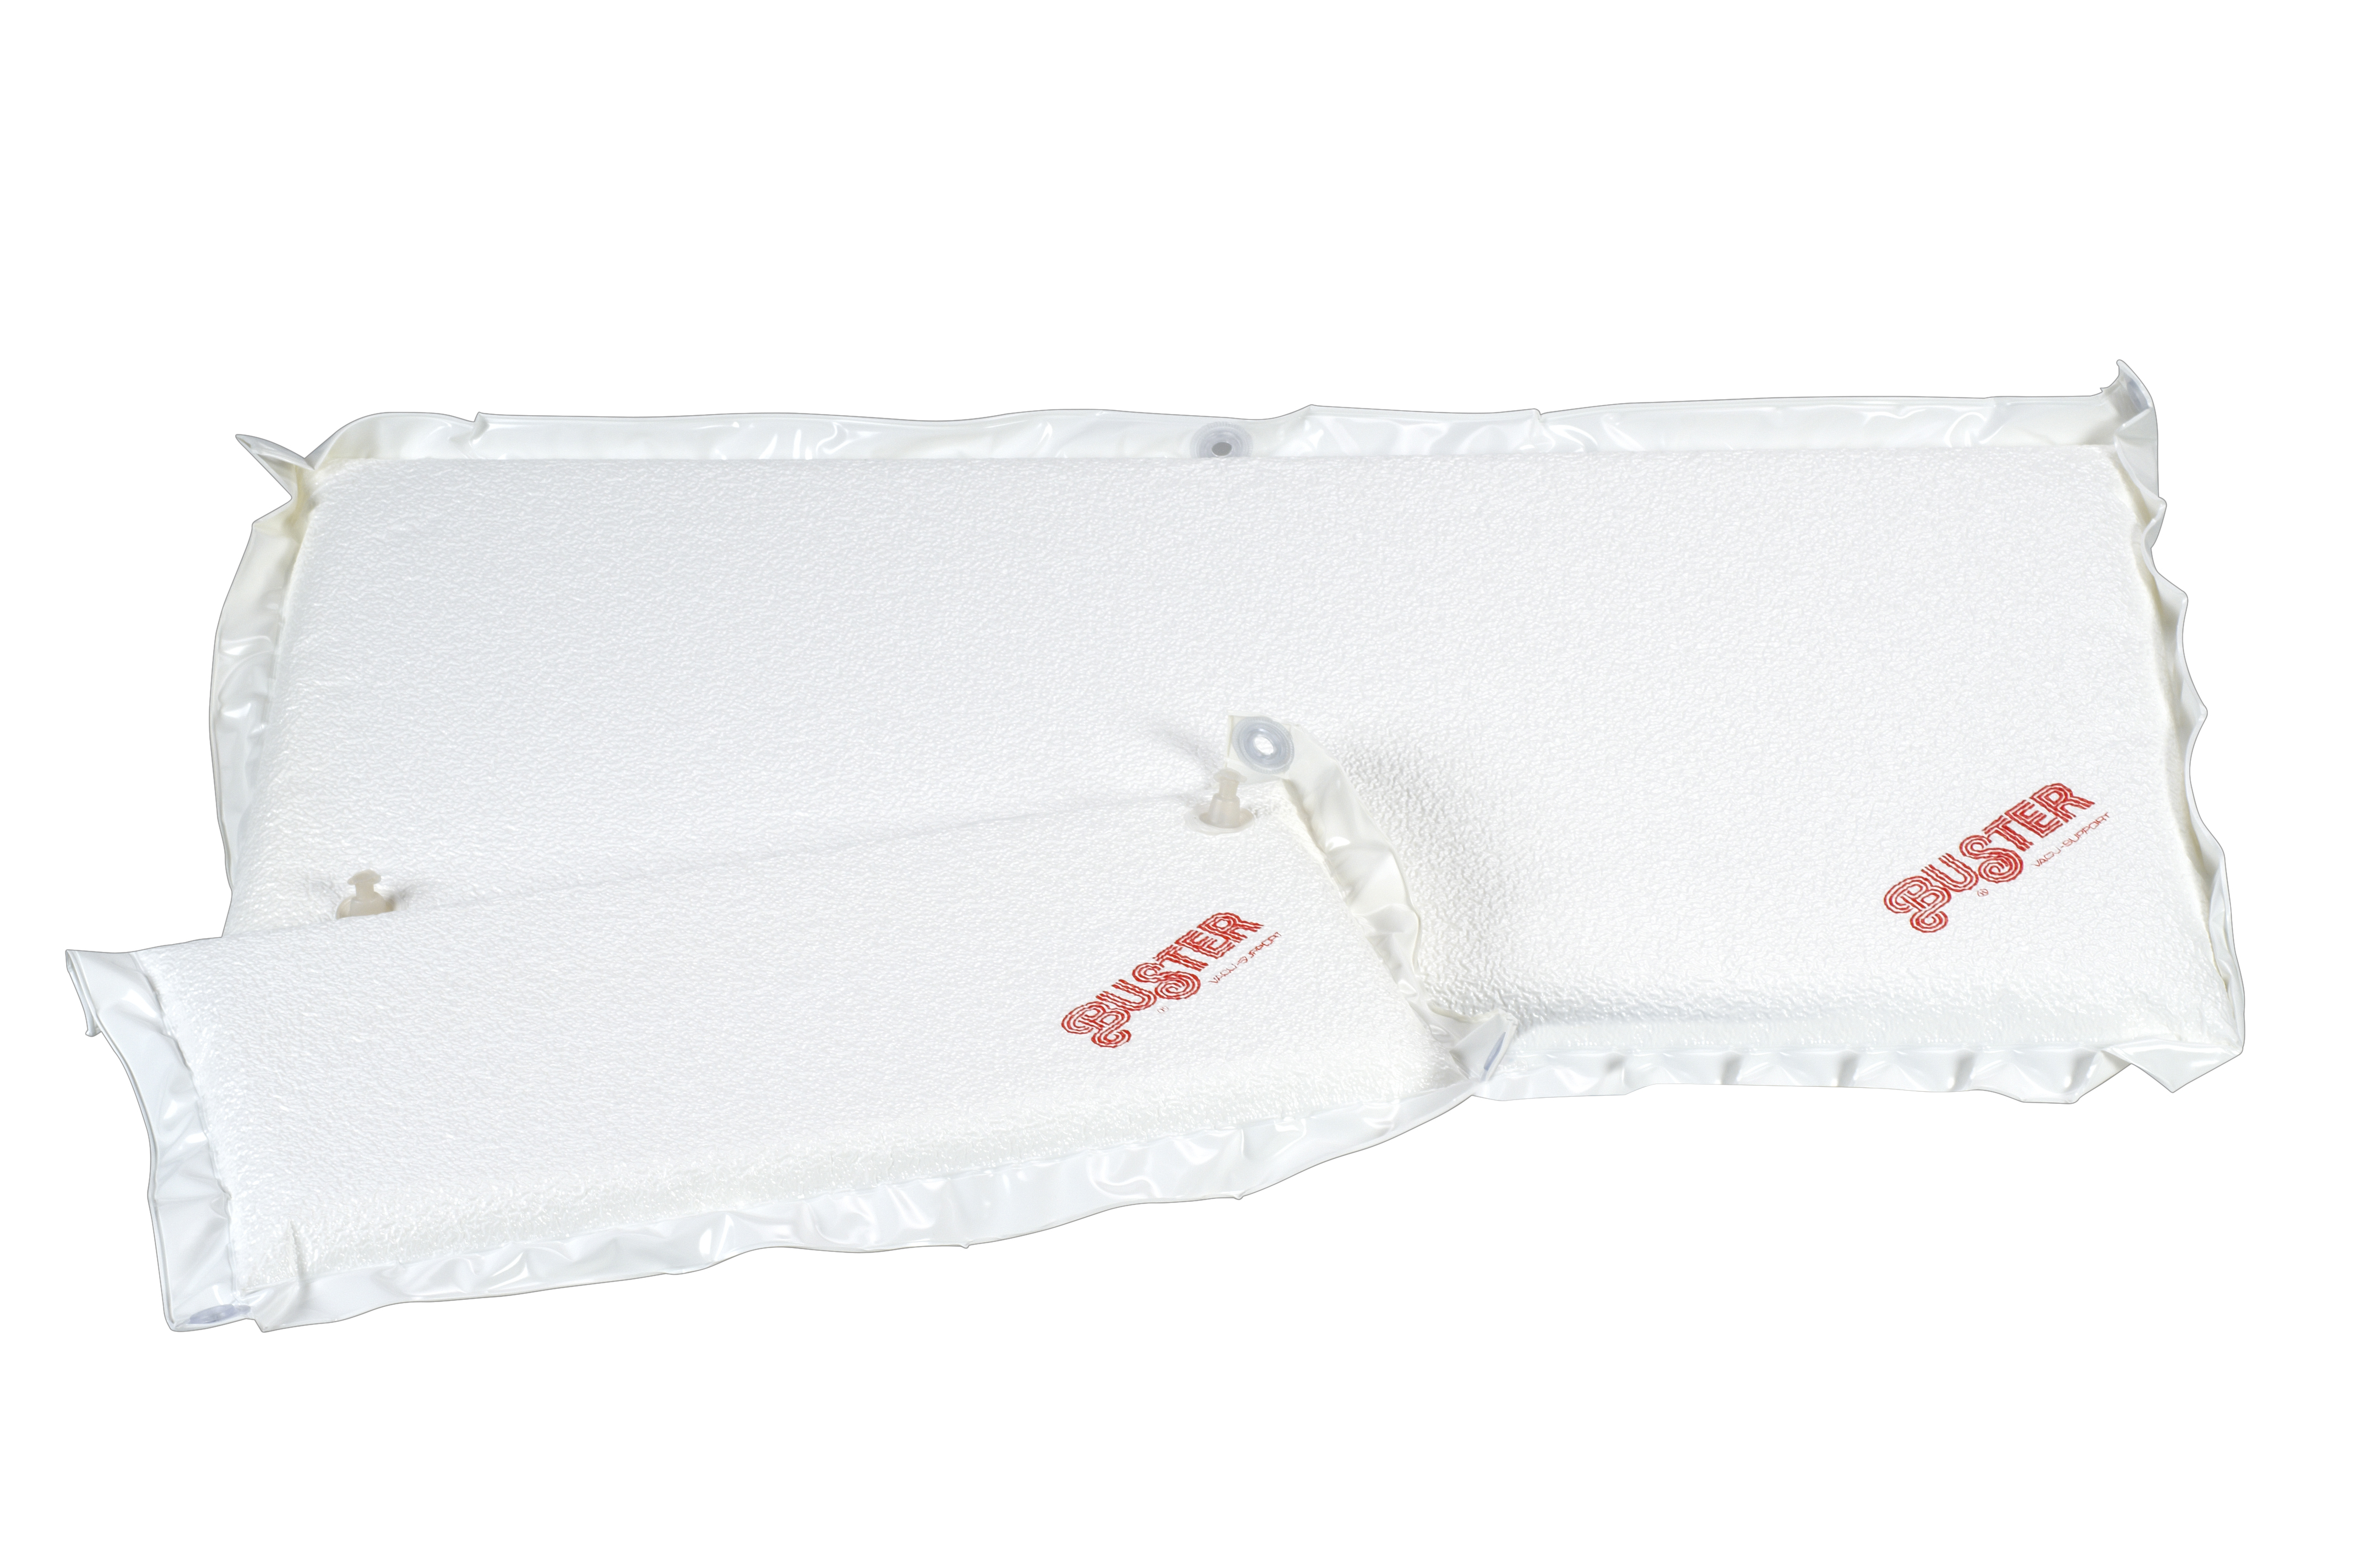 BUSTER vacu support 50x100 cm white